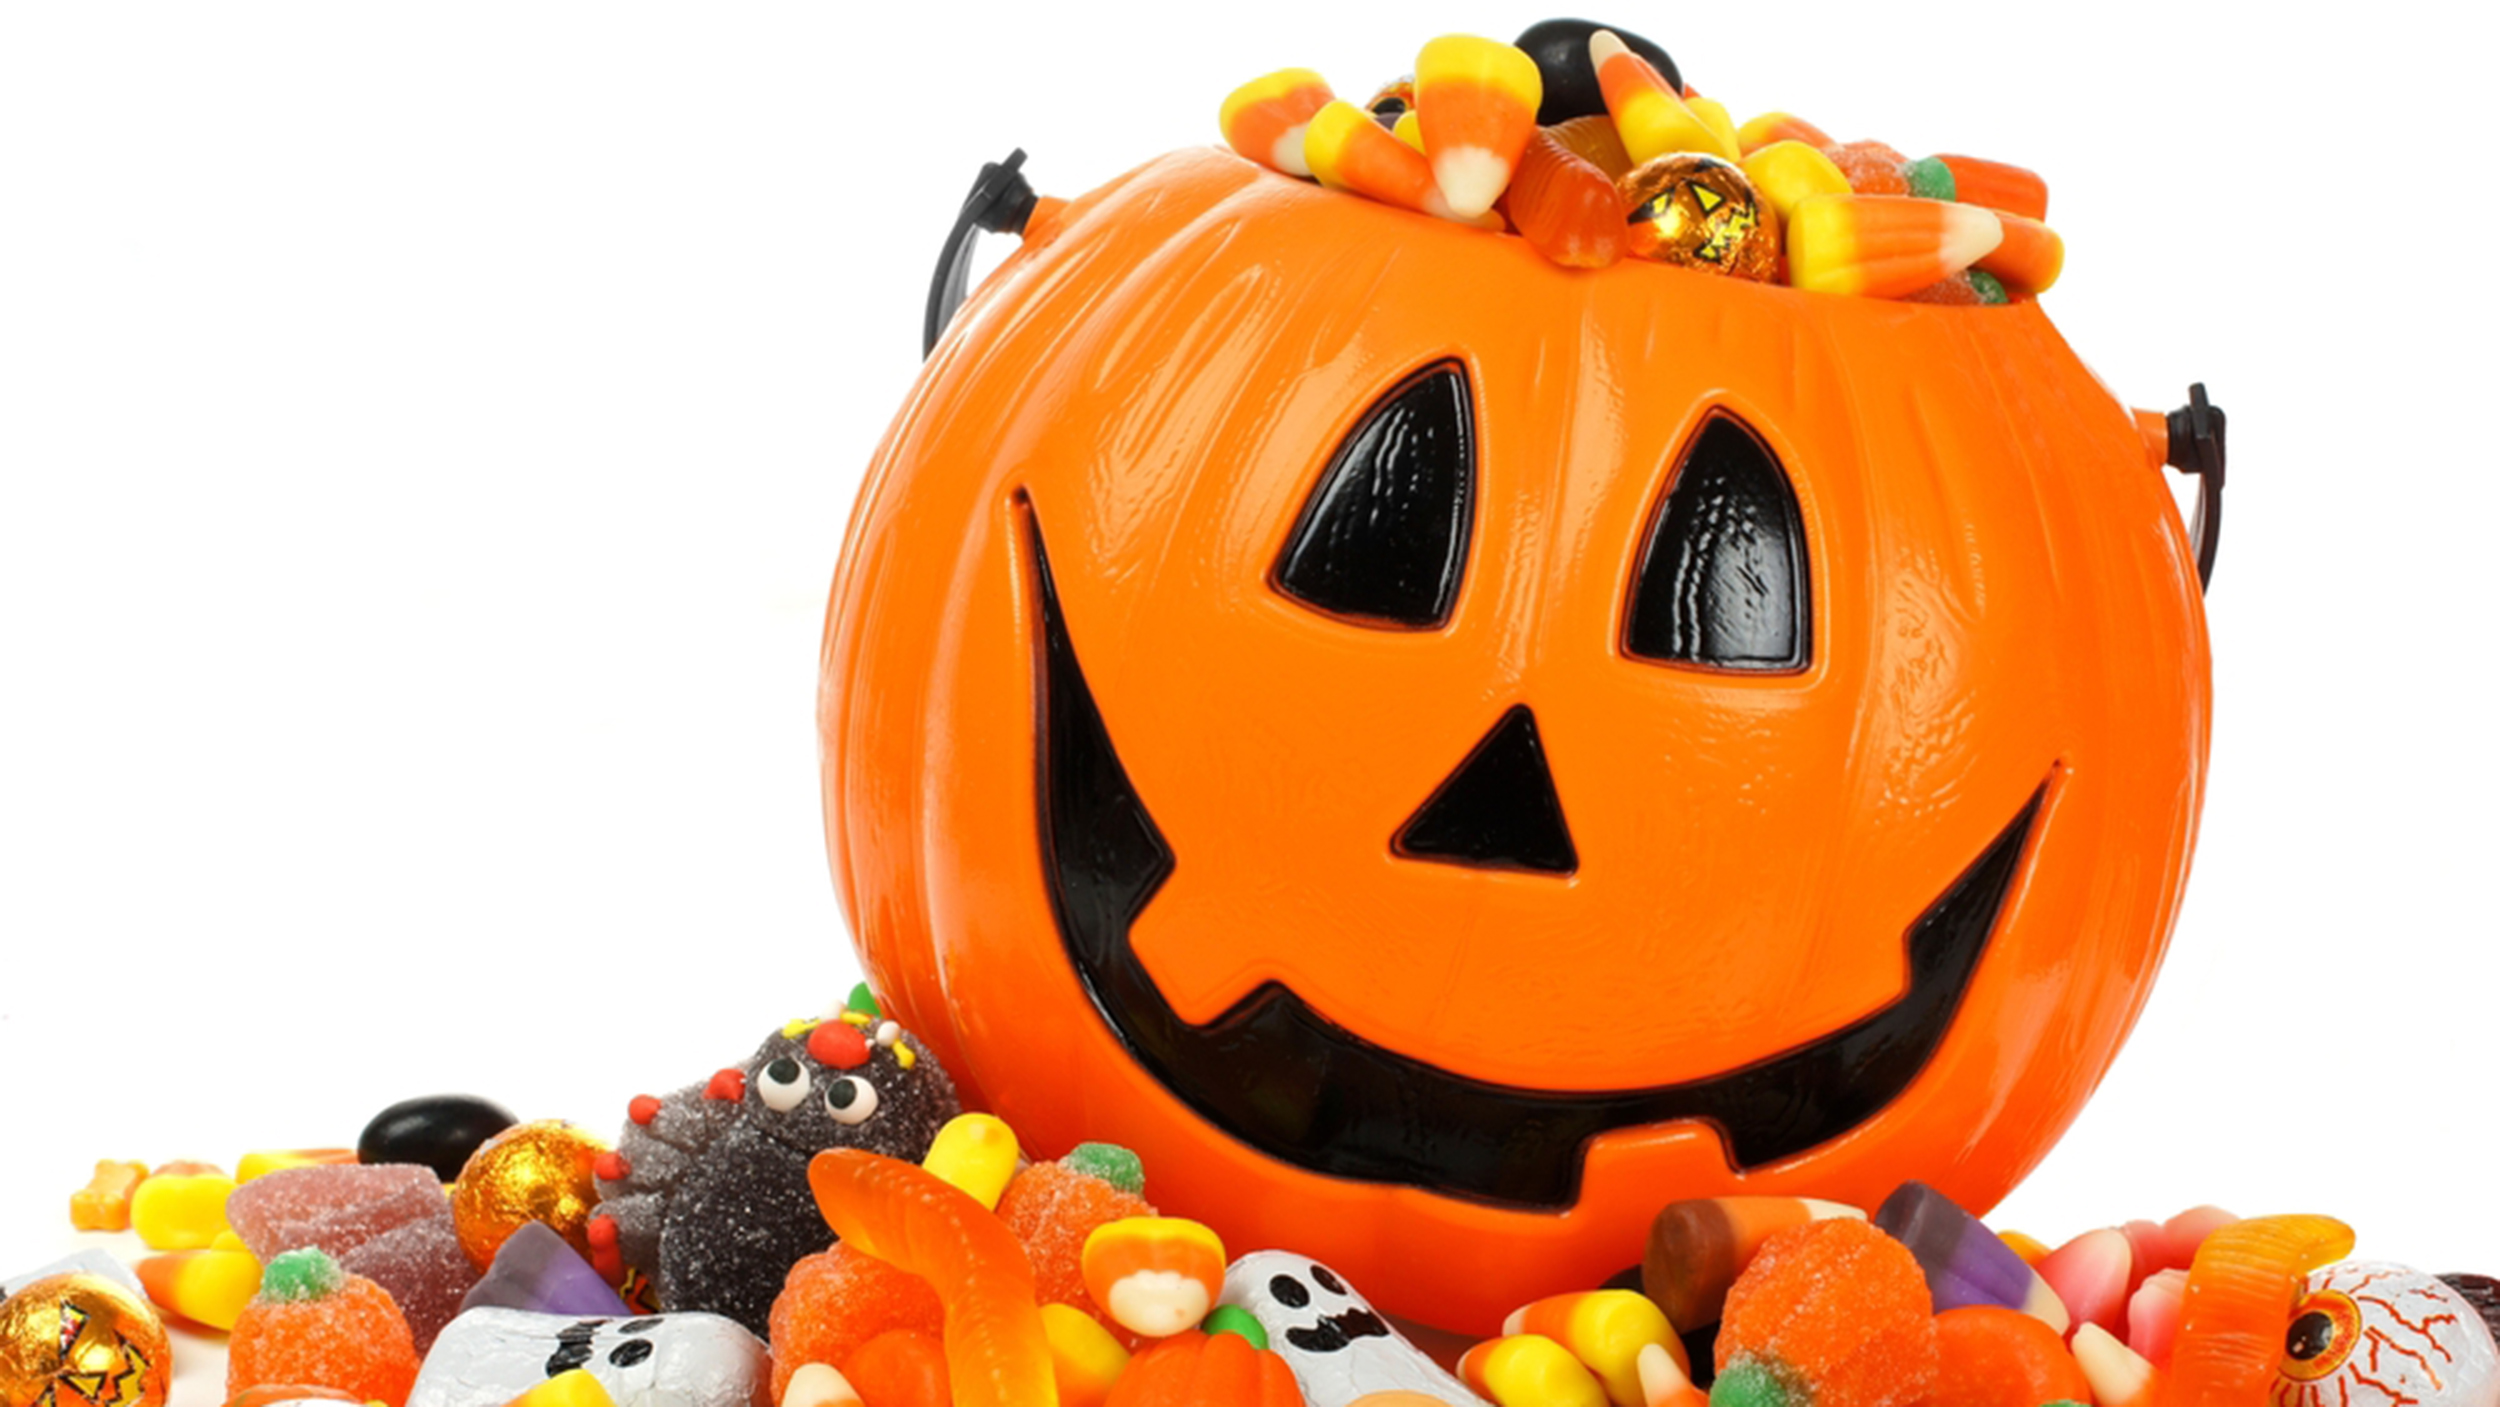 candy-pumpkin-stock-today-151019-tease-02_3a9ce40b8c3805738c01b8e54bf82479